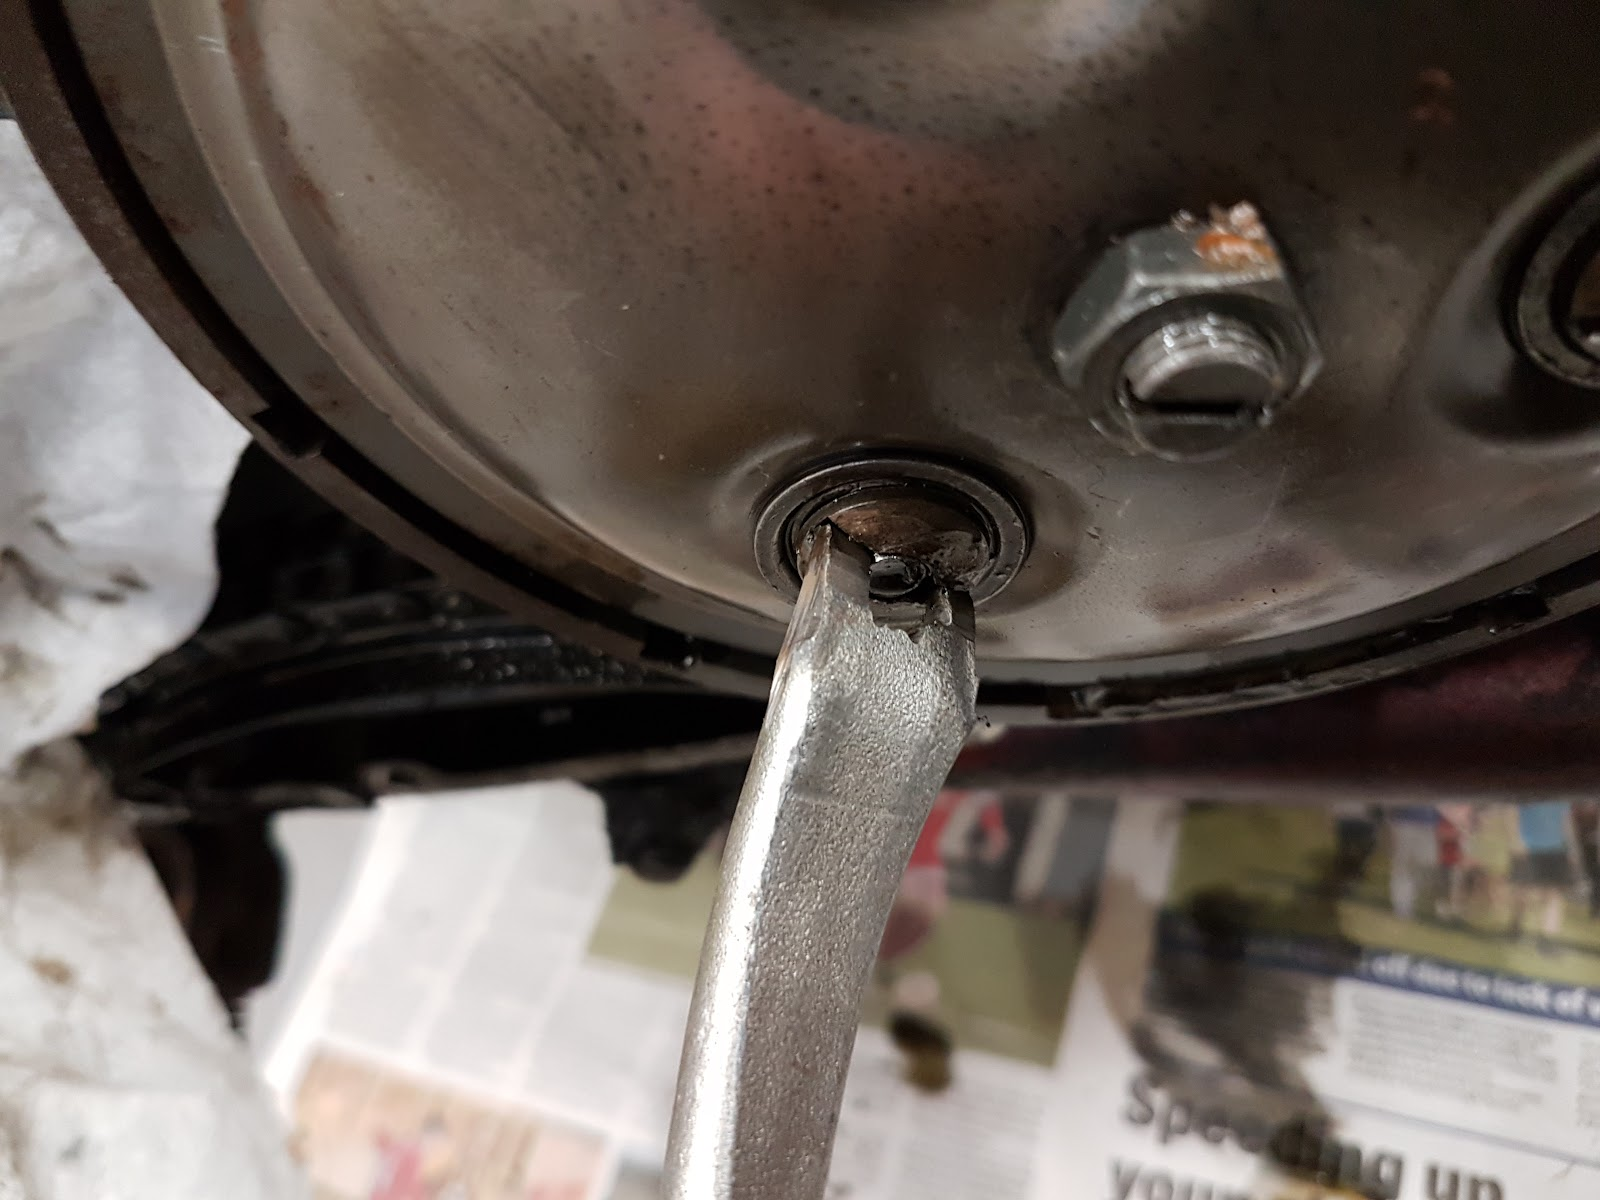 Making a special tool to remove the clutch retaining pins from a Triumph Bonneville out of an old tyre lever.